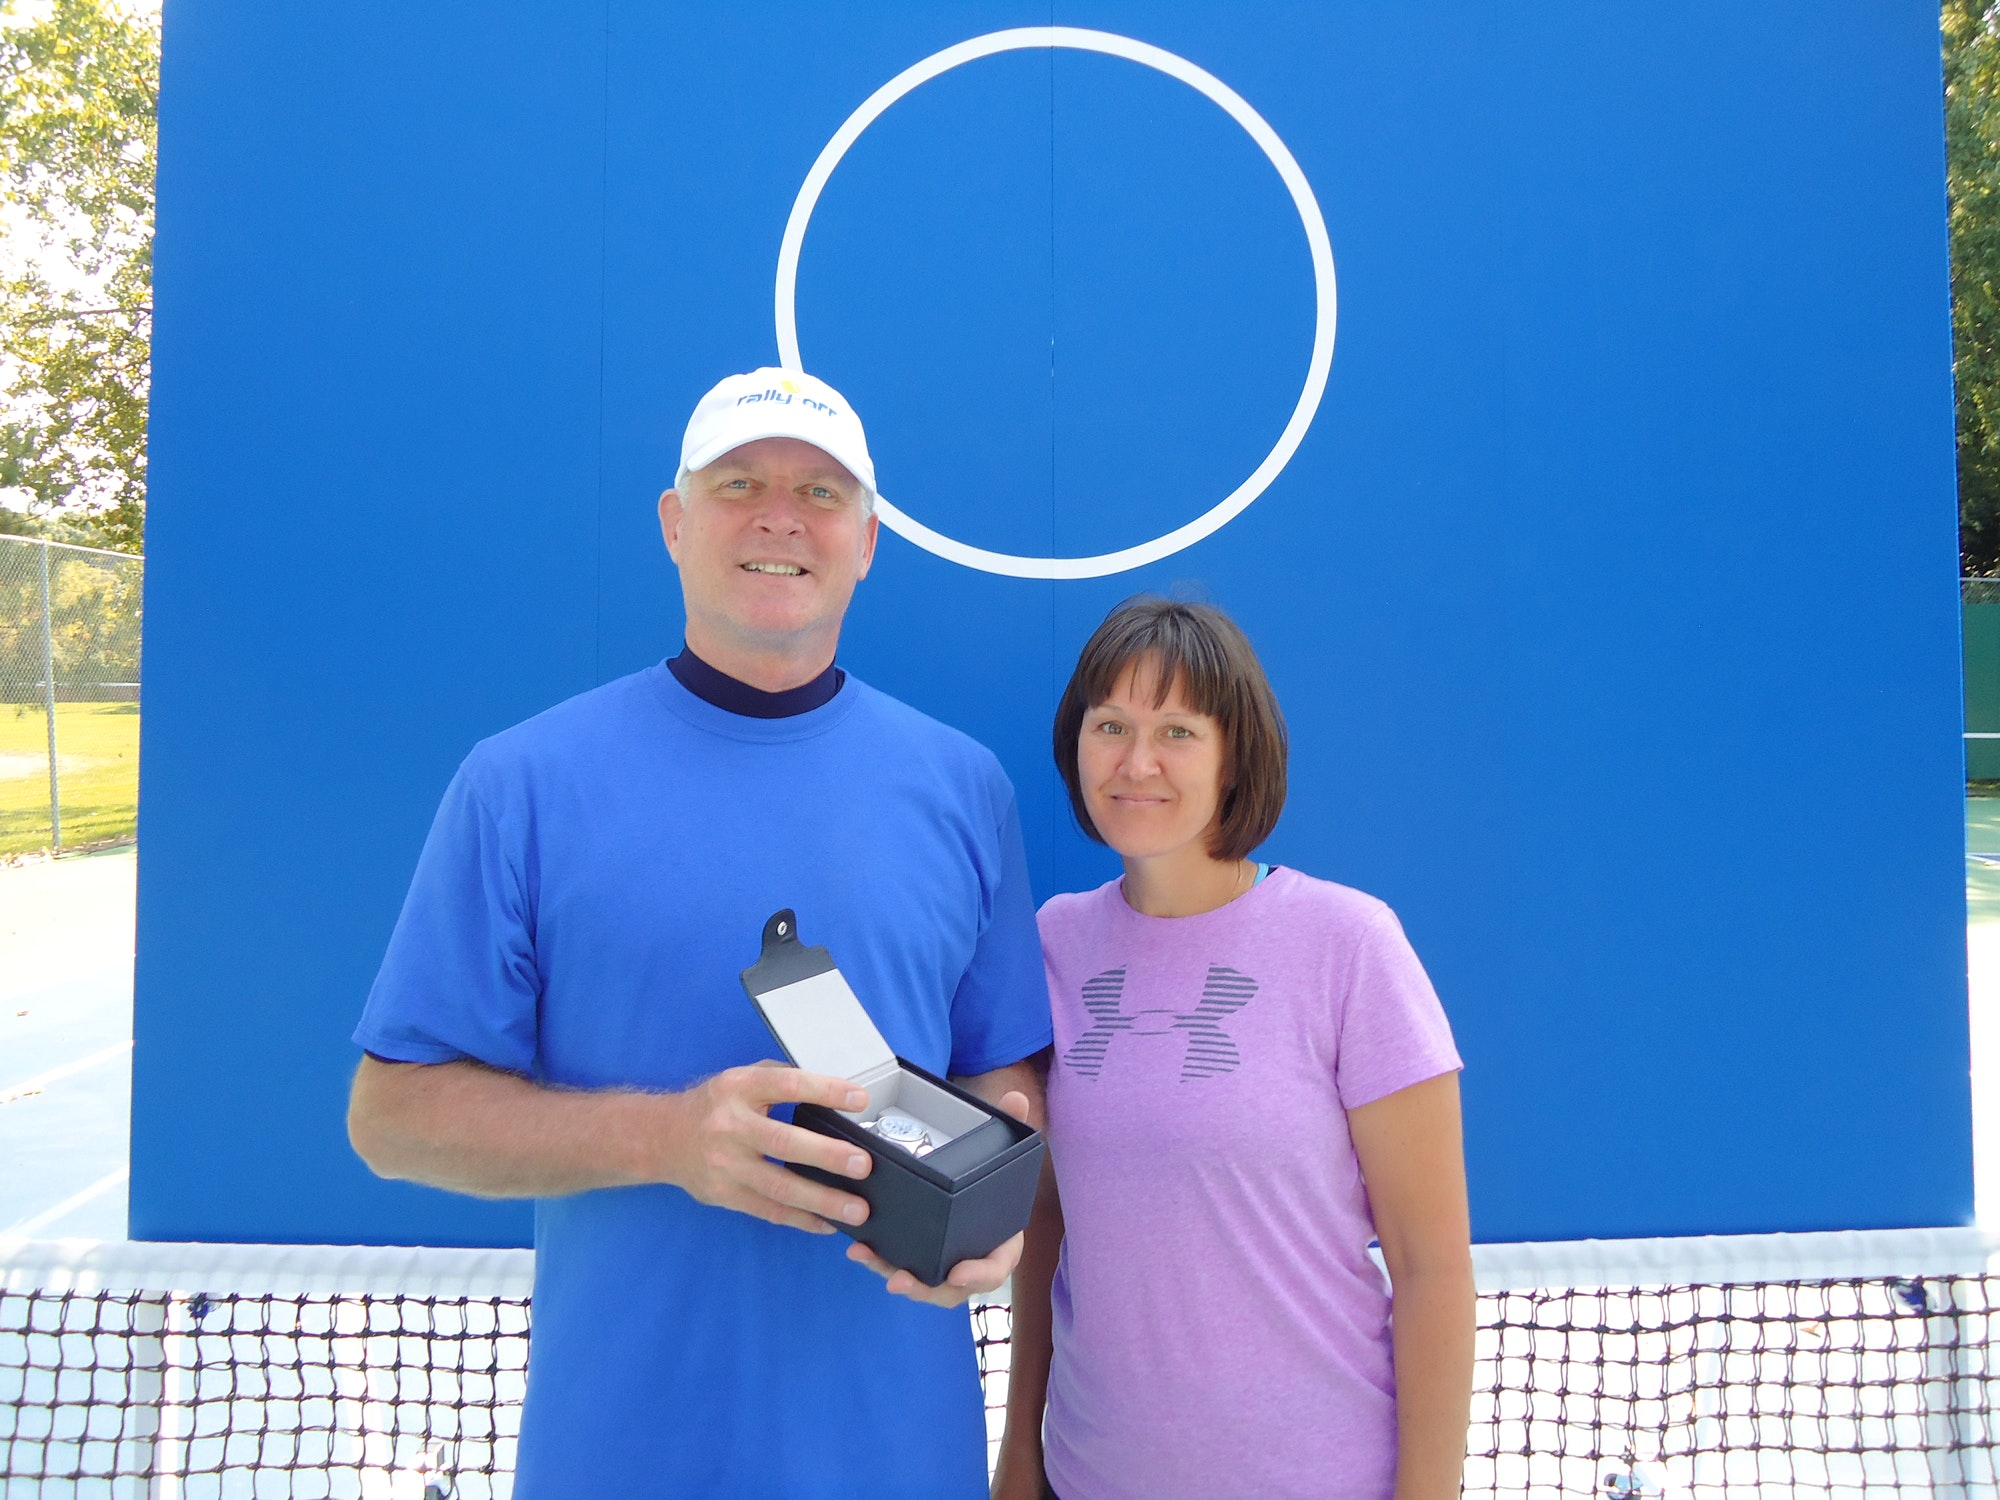 Brian W. teaches tennis lessons in Excelsior, MN